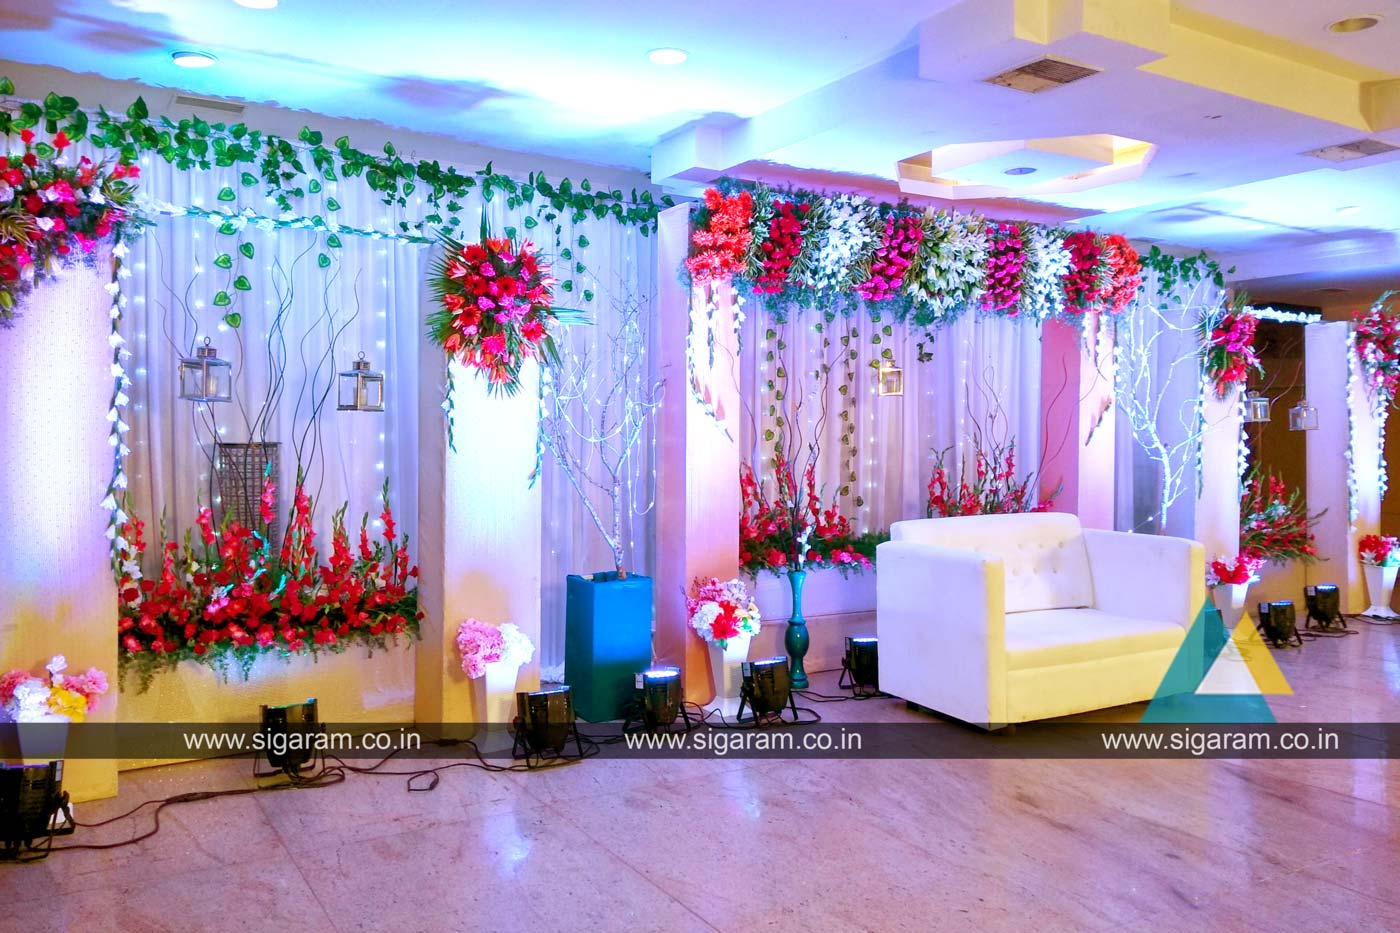 sigaram wedding decorators